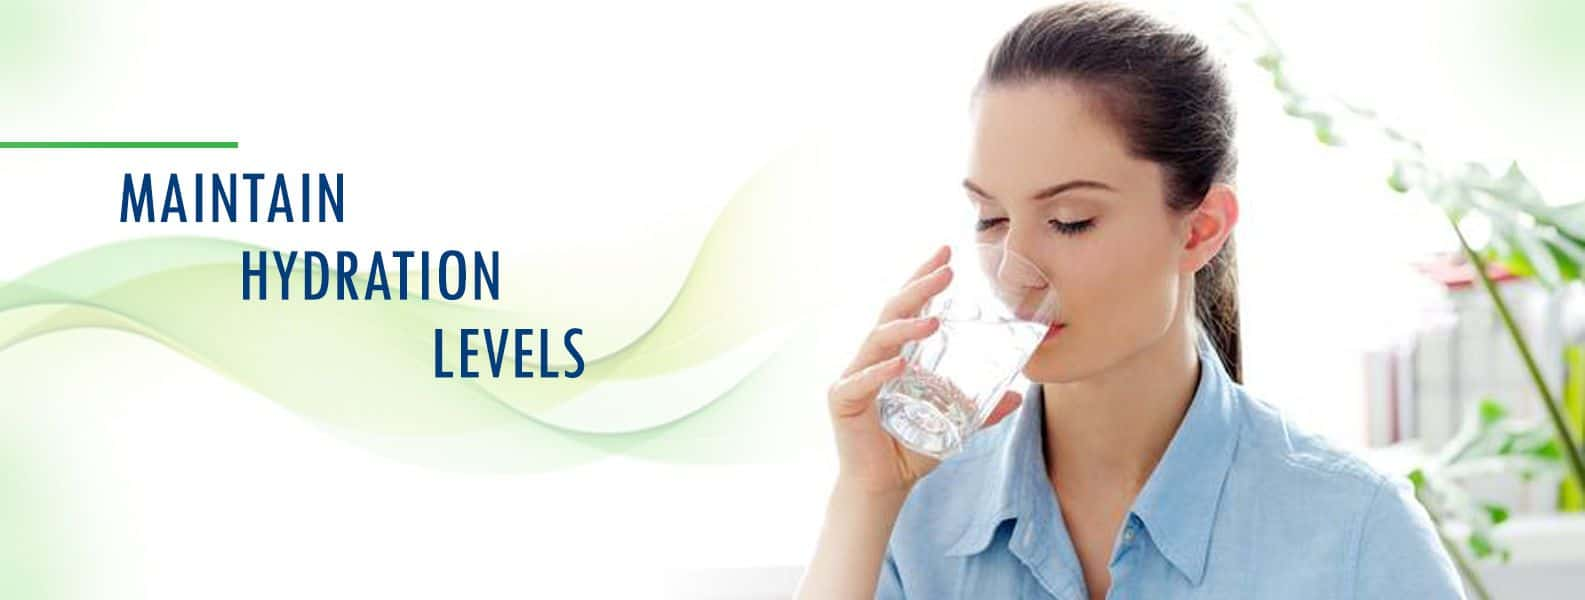 AVOID DEHYDRATION- MAINTAIN HYDRATION LEVELS